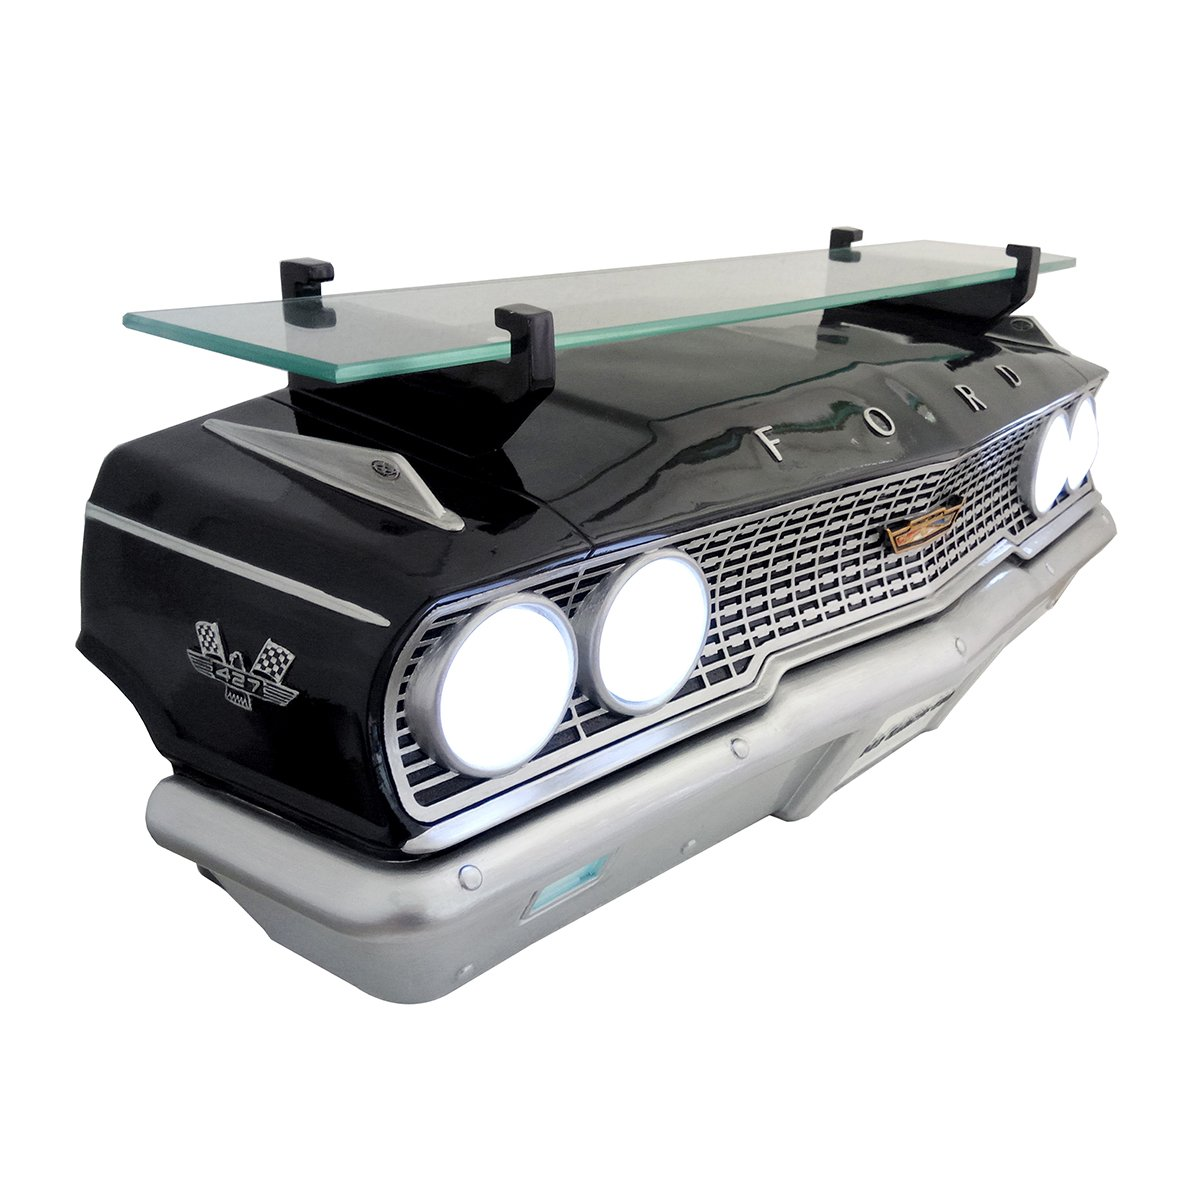 "Wall Shelf, Decorative Wall Shelf for Automotive Car Enthusiasts, Car Shelves (1963 Ford Galaxie 500 427) 19"" W x 71/2 ""H x 6.5"" D weight 7 lbs."